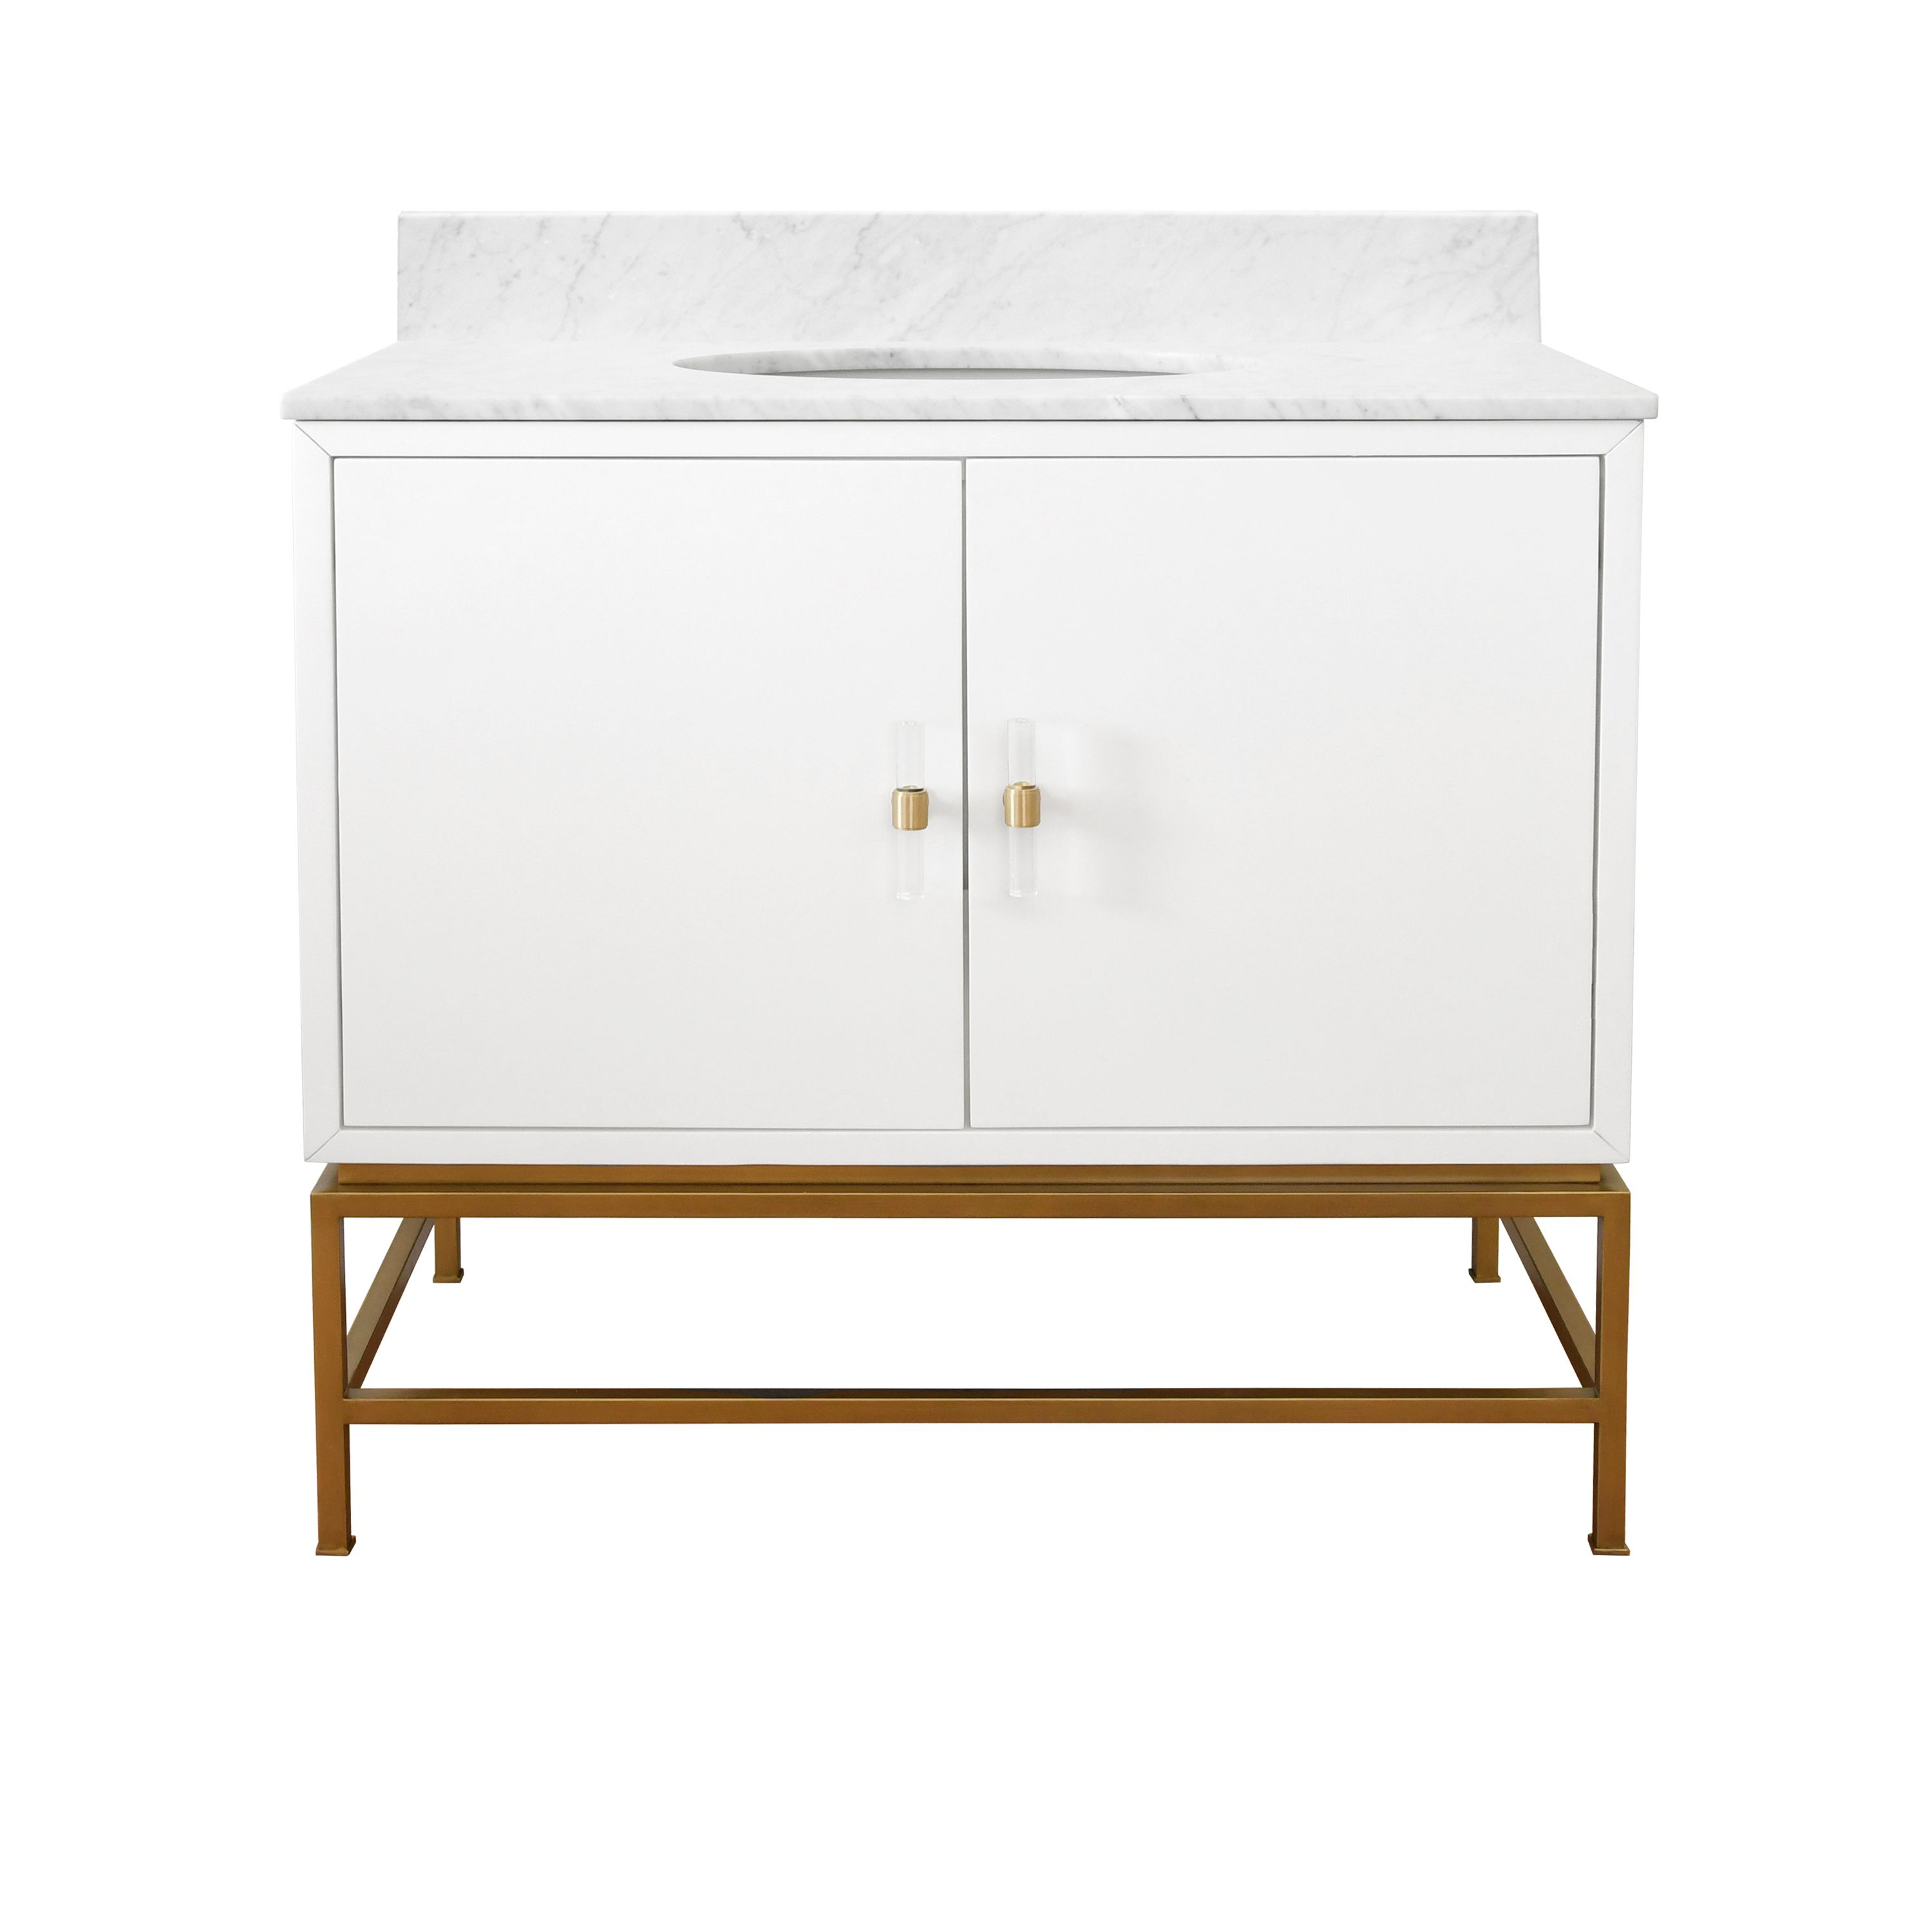 Bath Vanity in Matte White Lacquer and Antique Brass with White Marble Top and Porcelain Sink